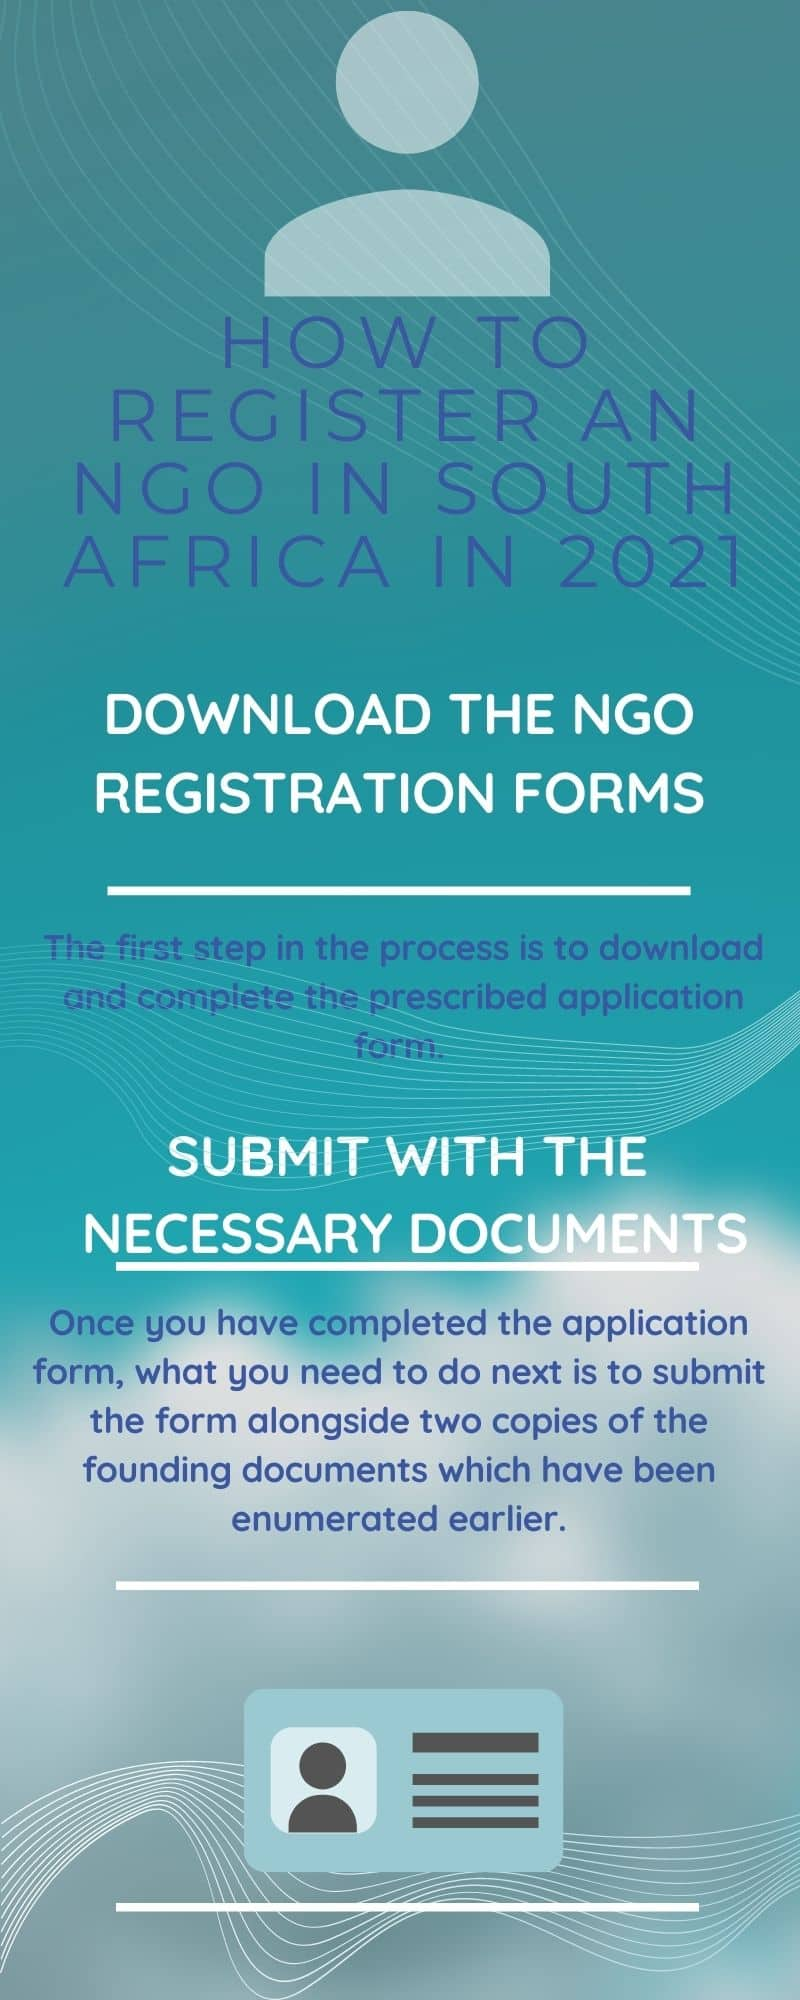 How to register an NGO in South Africa